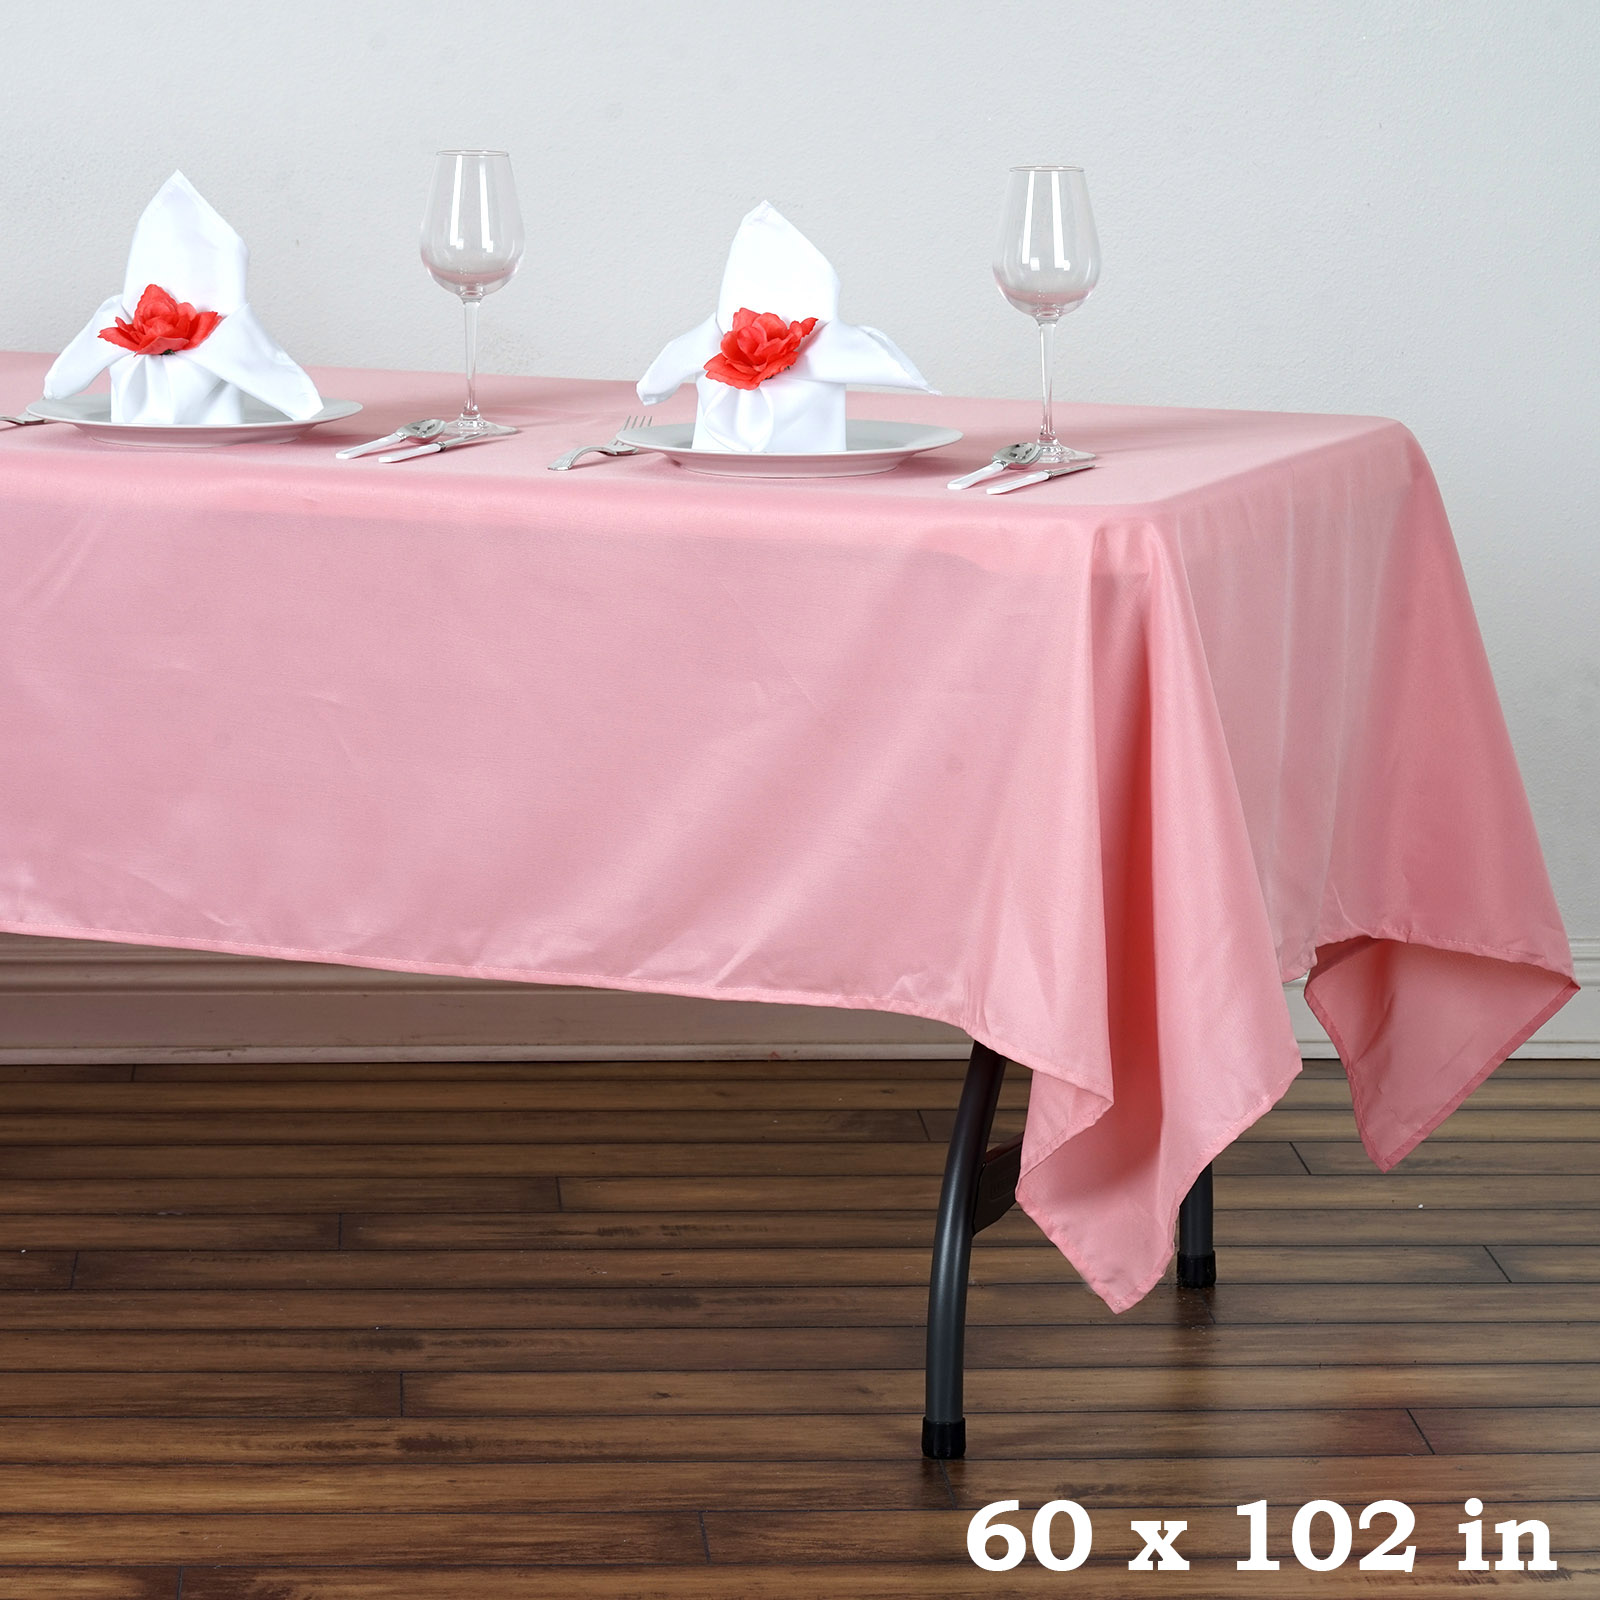 5pcs-60x102-034-Polyester-Rectangle-Tablecloths-For-Wedding-Party-Banquet-Events thumbnail 11